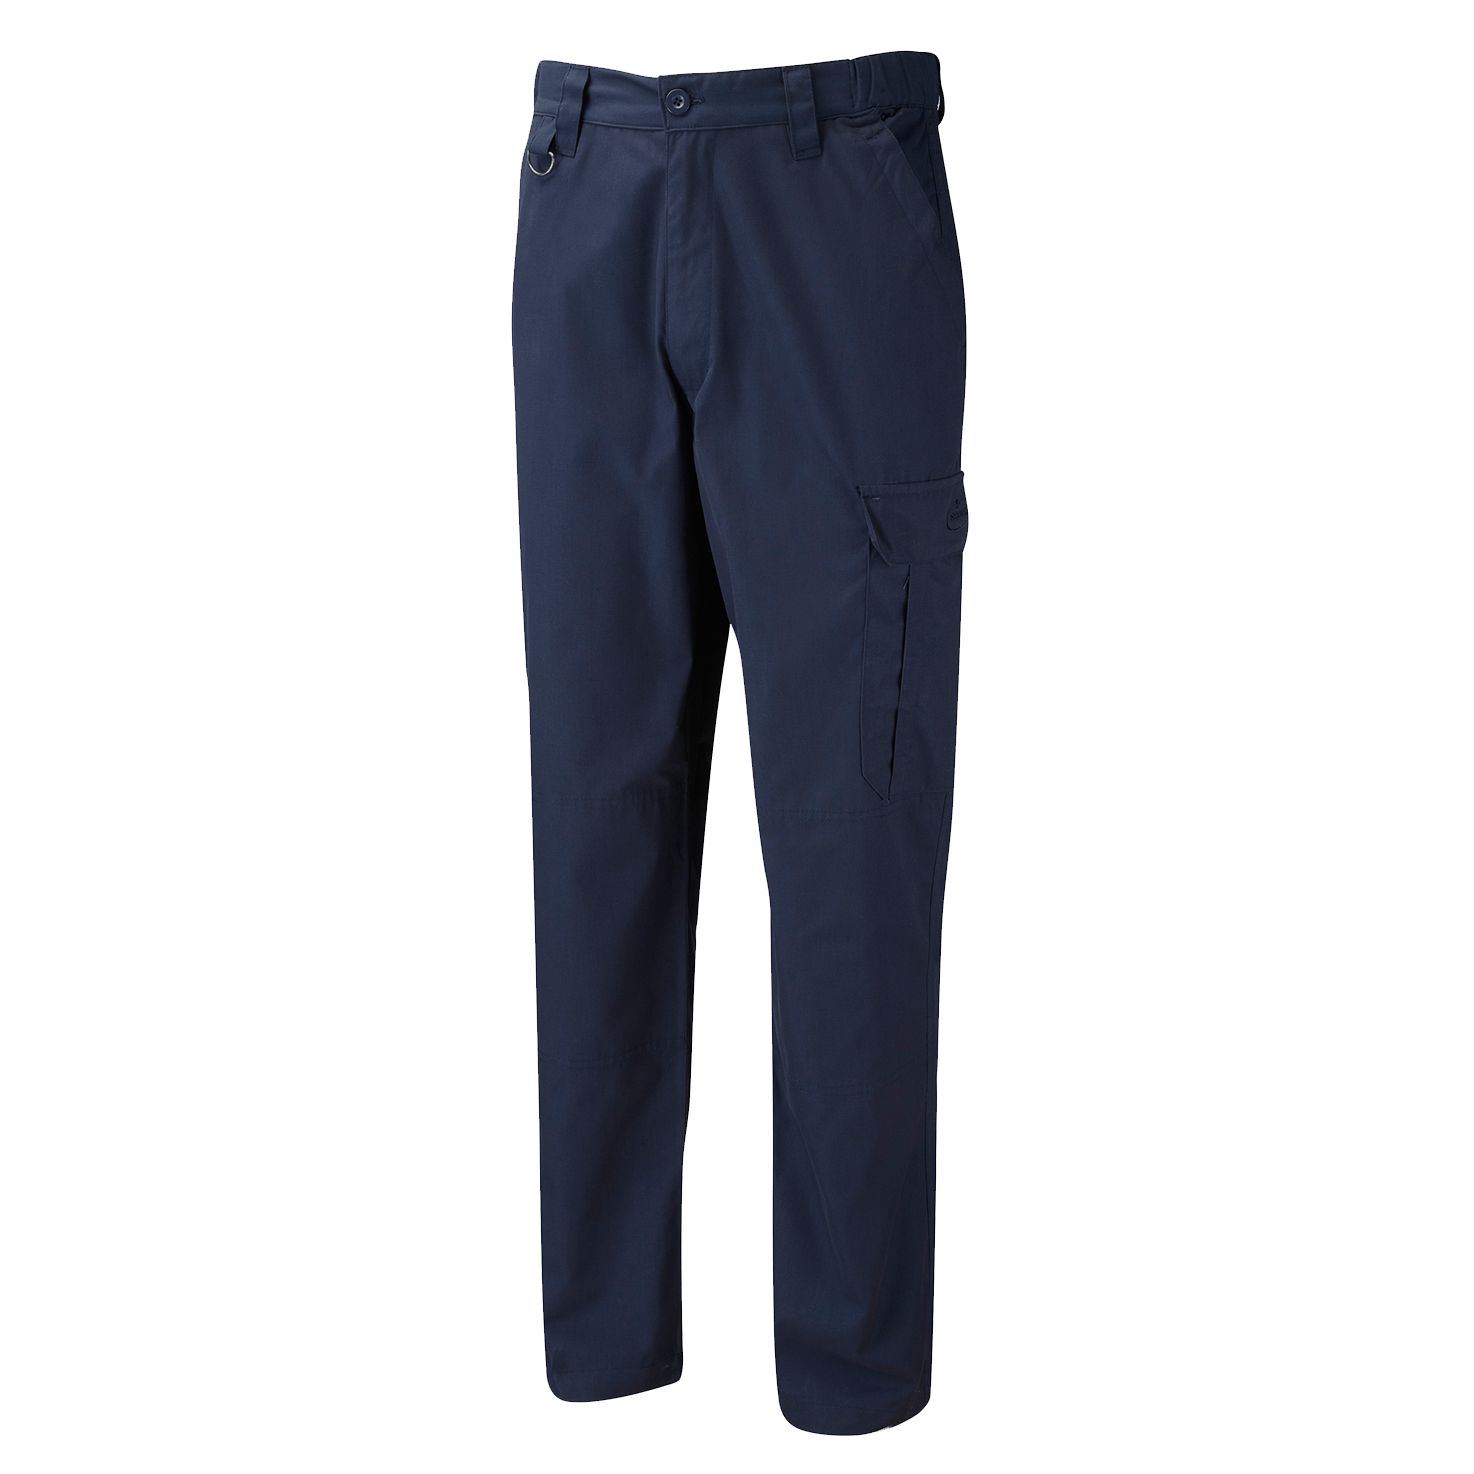 Activity Trousers Navy Male - Swifts Uniforms